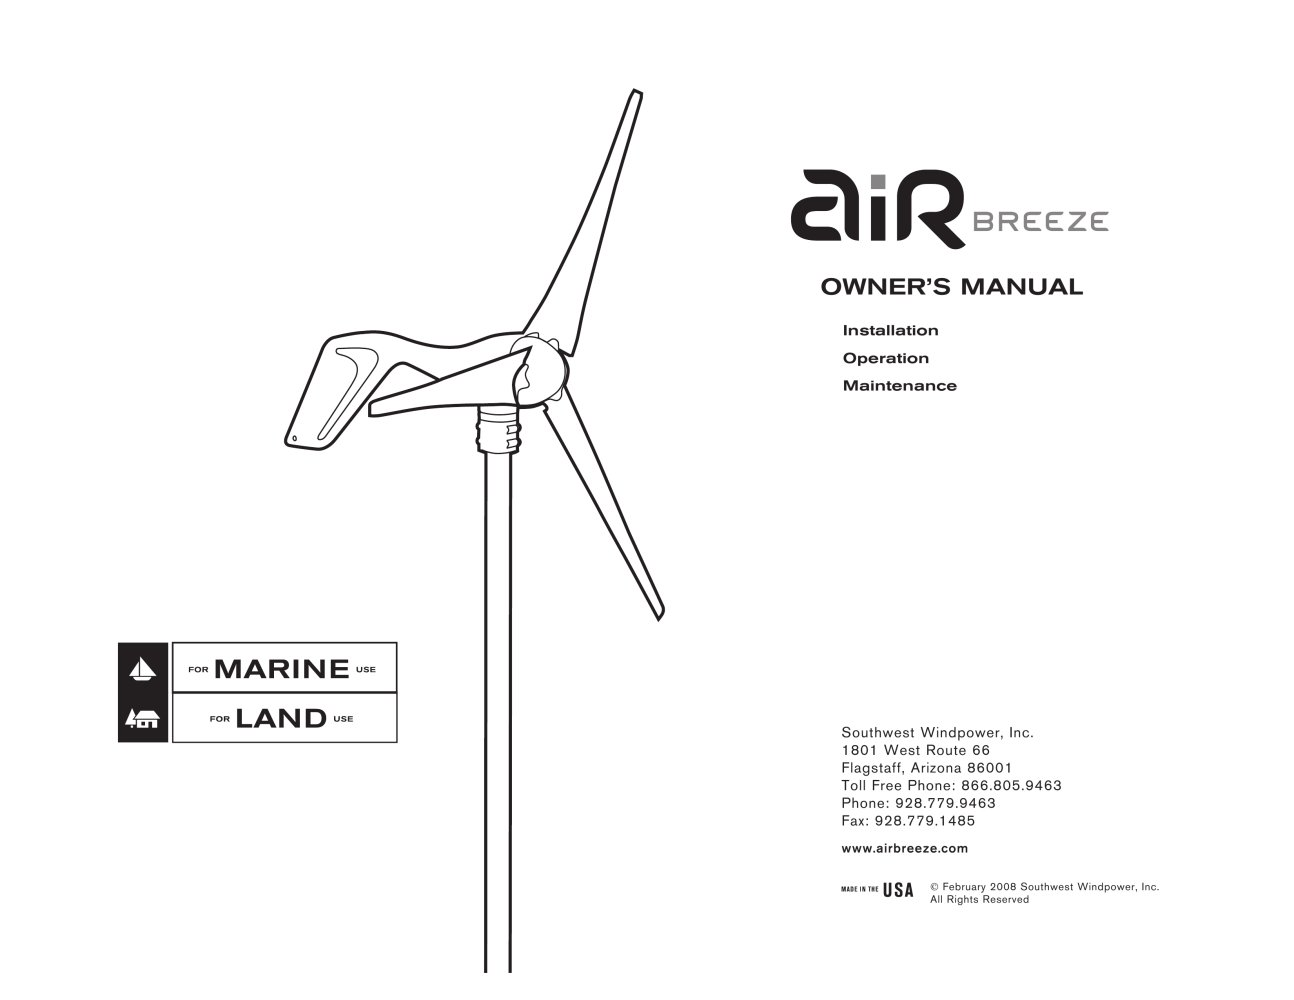 Airx Wind Generator Wiring Diagram Free Download Power Air Breeze Land Marine Owners Manual Southwest Windpower Pdf Turbine How It Works At